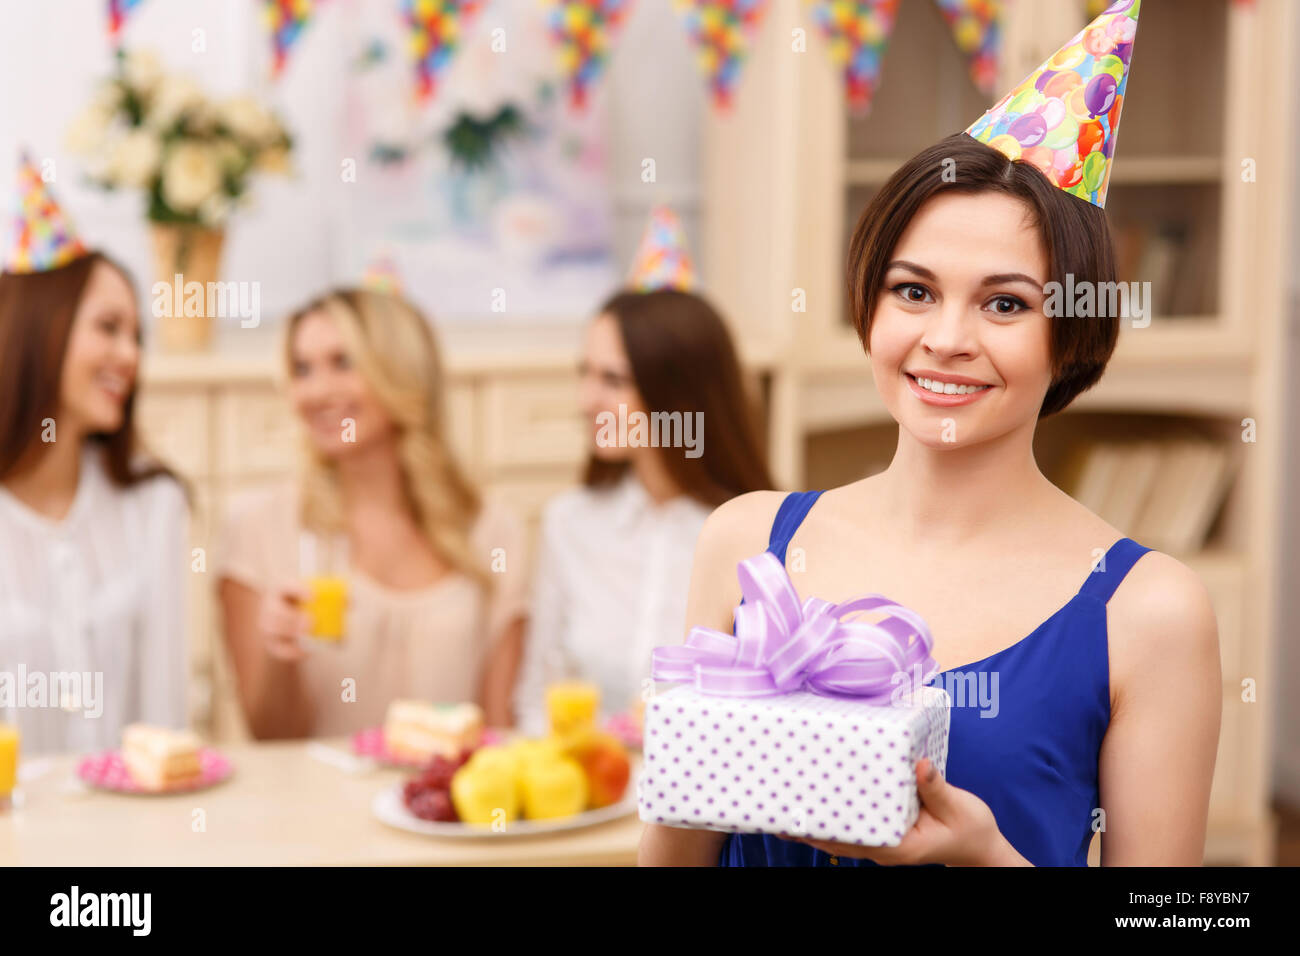 Happy young girl posing with birthday gift - Stock Image